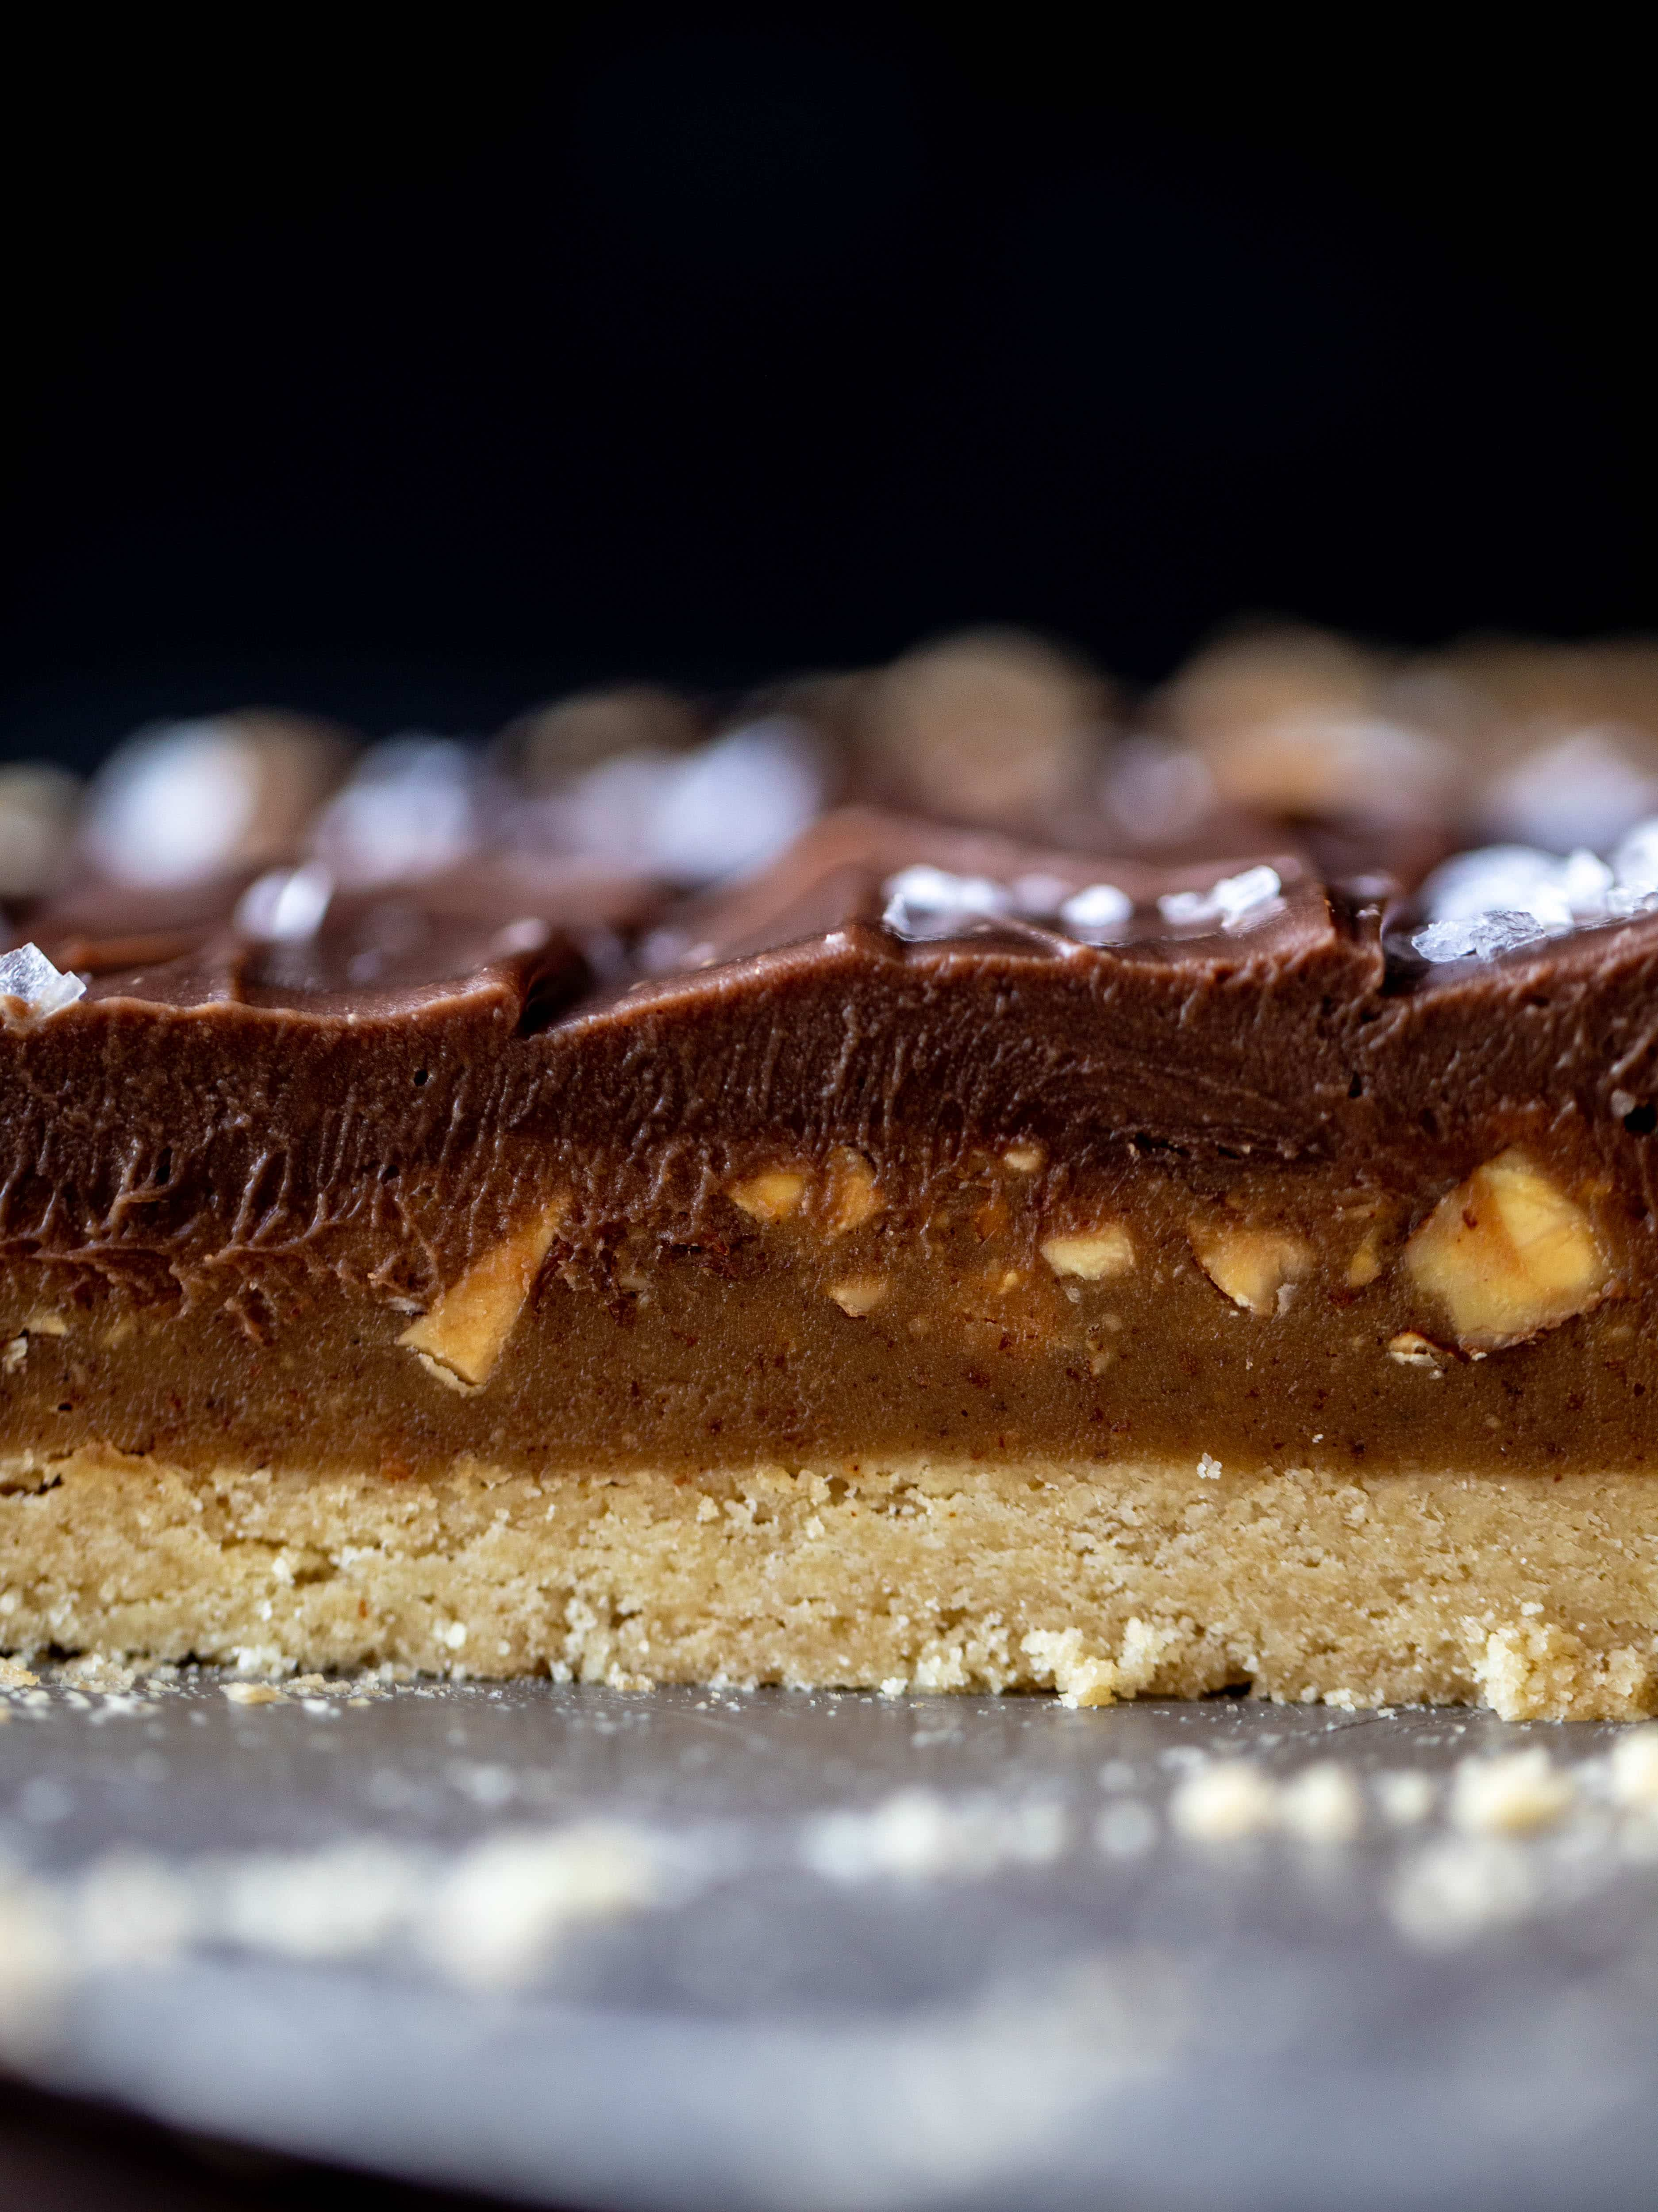 This snickers almond tart is made with an almond crust, homemade almond butter caramel and a chocolate ganache. It's to die for!